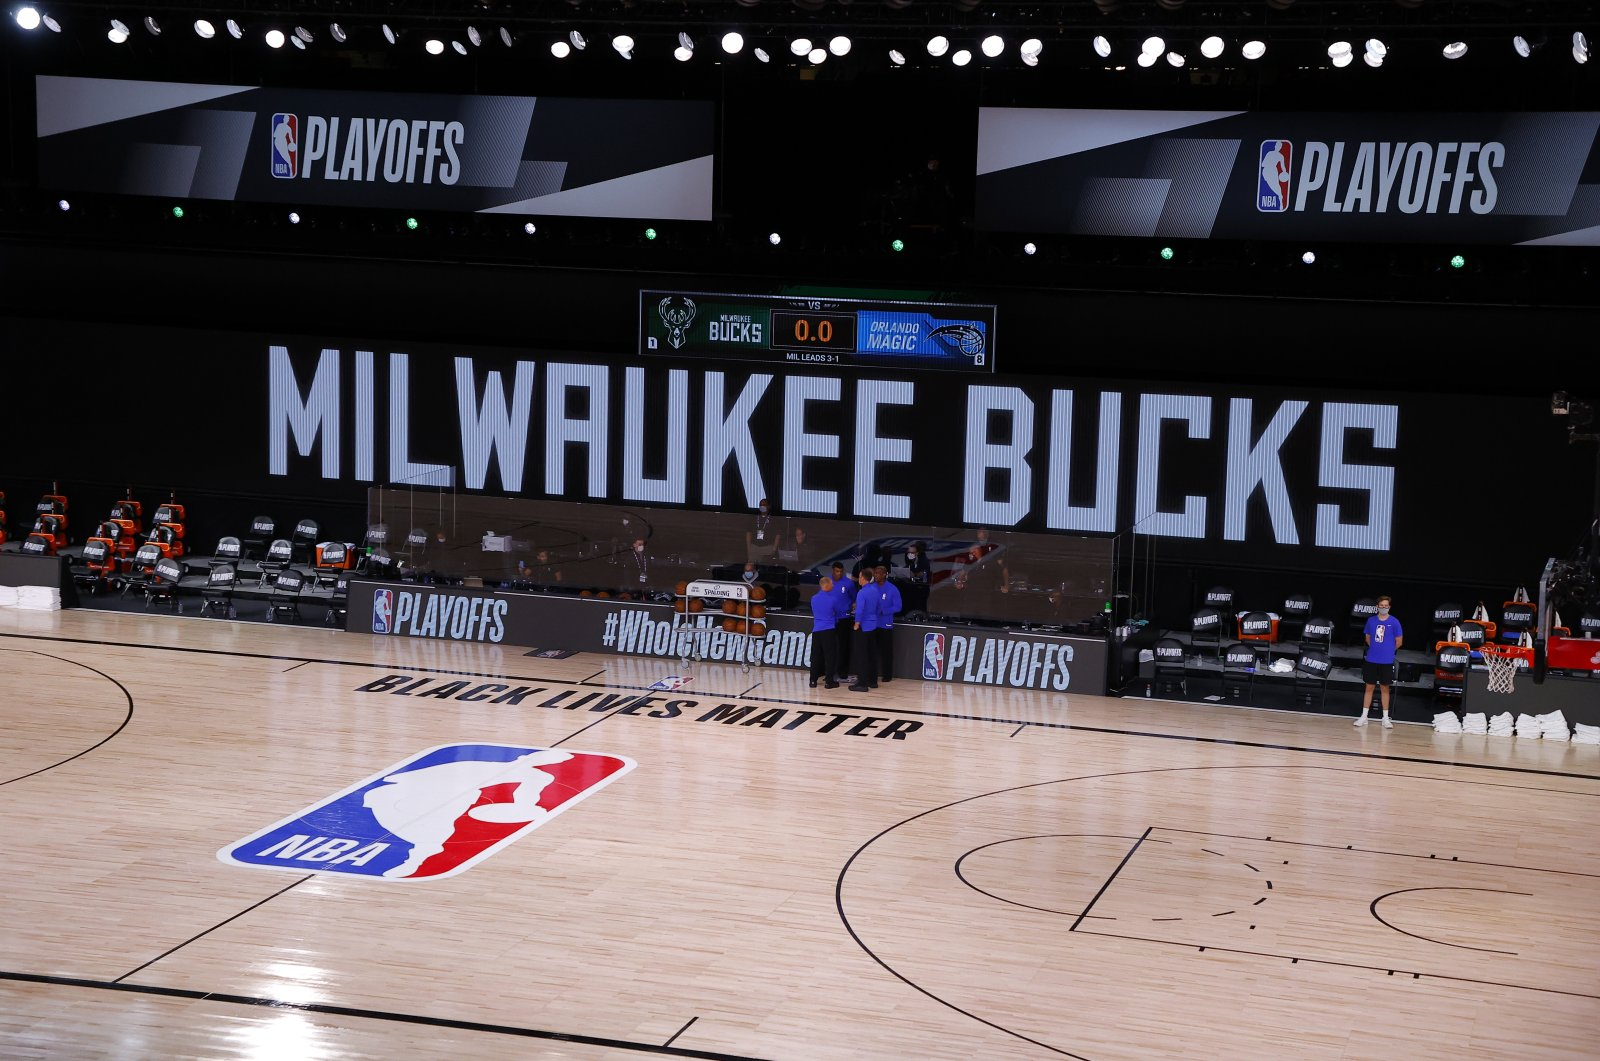 Referees huddle on an empty court at game time of a scheduled NBA playoff game between the Milwaukee Bucks and the Orlando Magic in Lake Buena Vista, Florida, U.S., Aug. 26, 2020. (AP Photo)